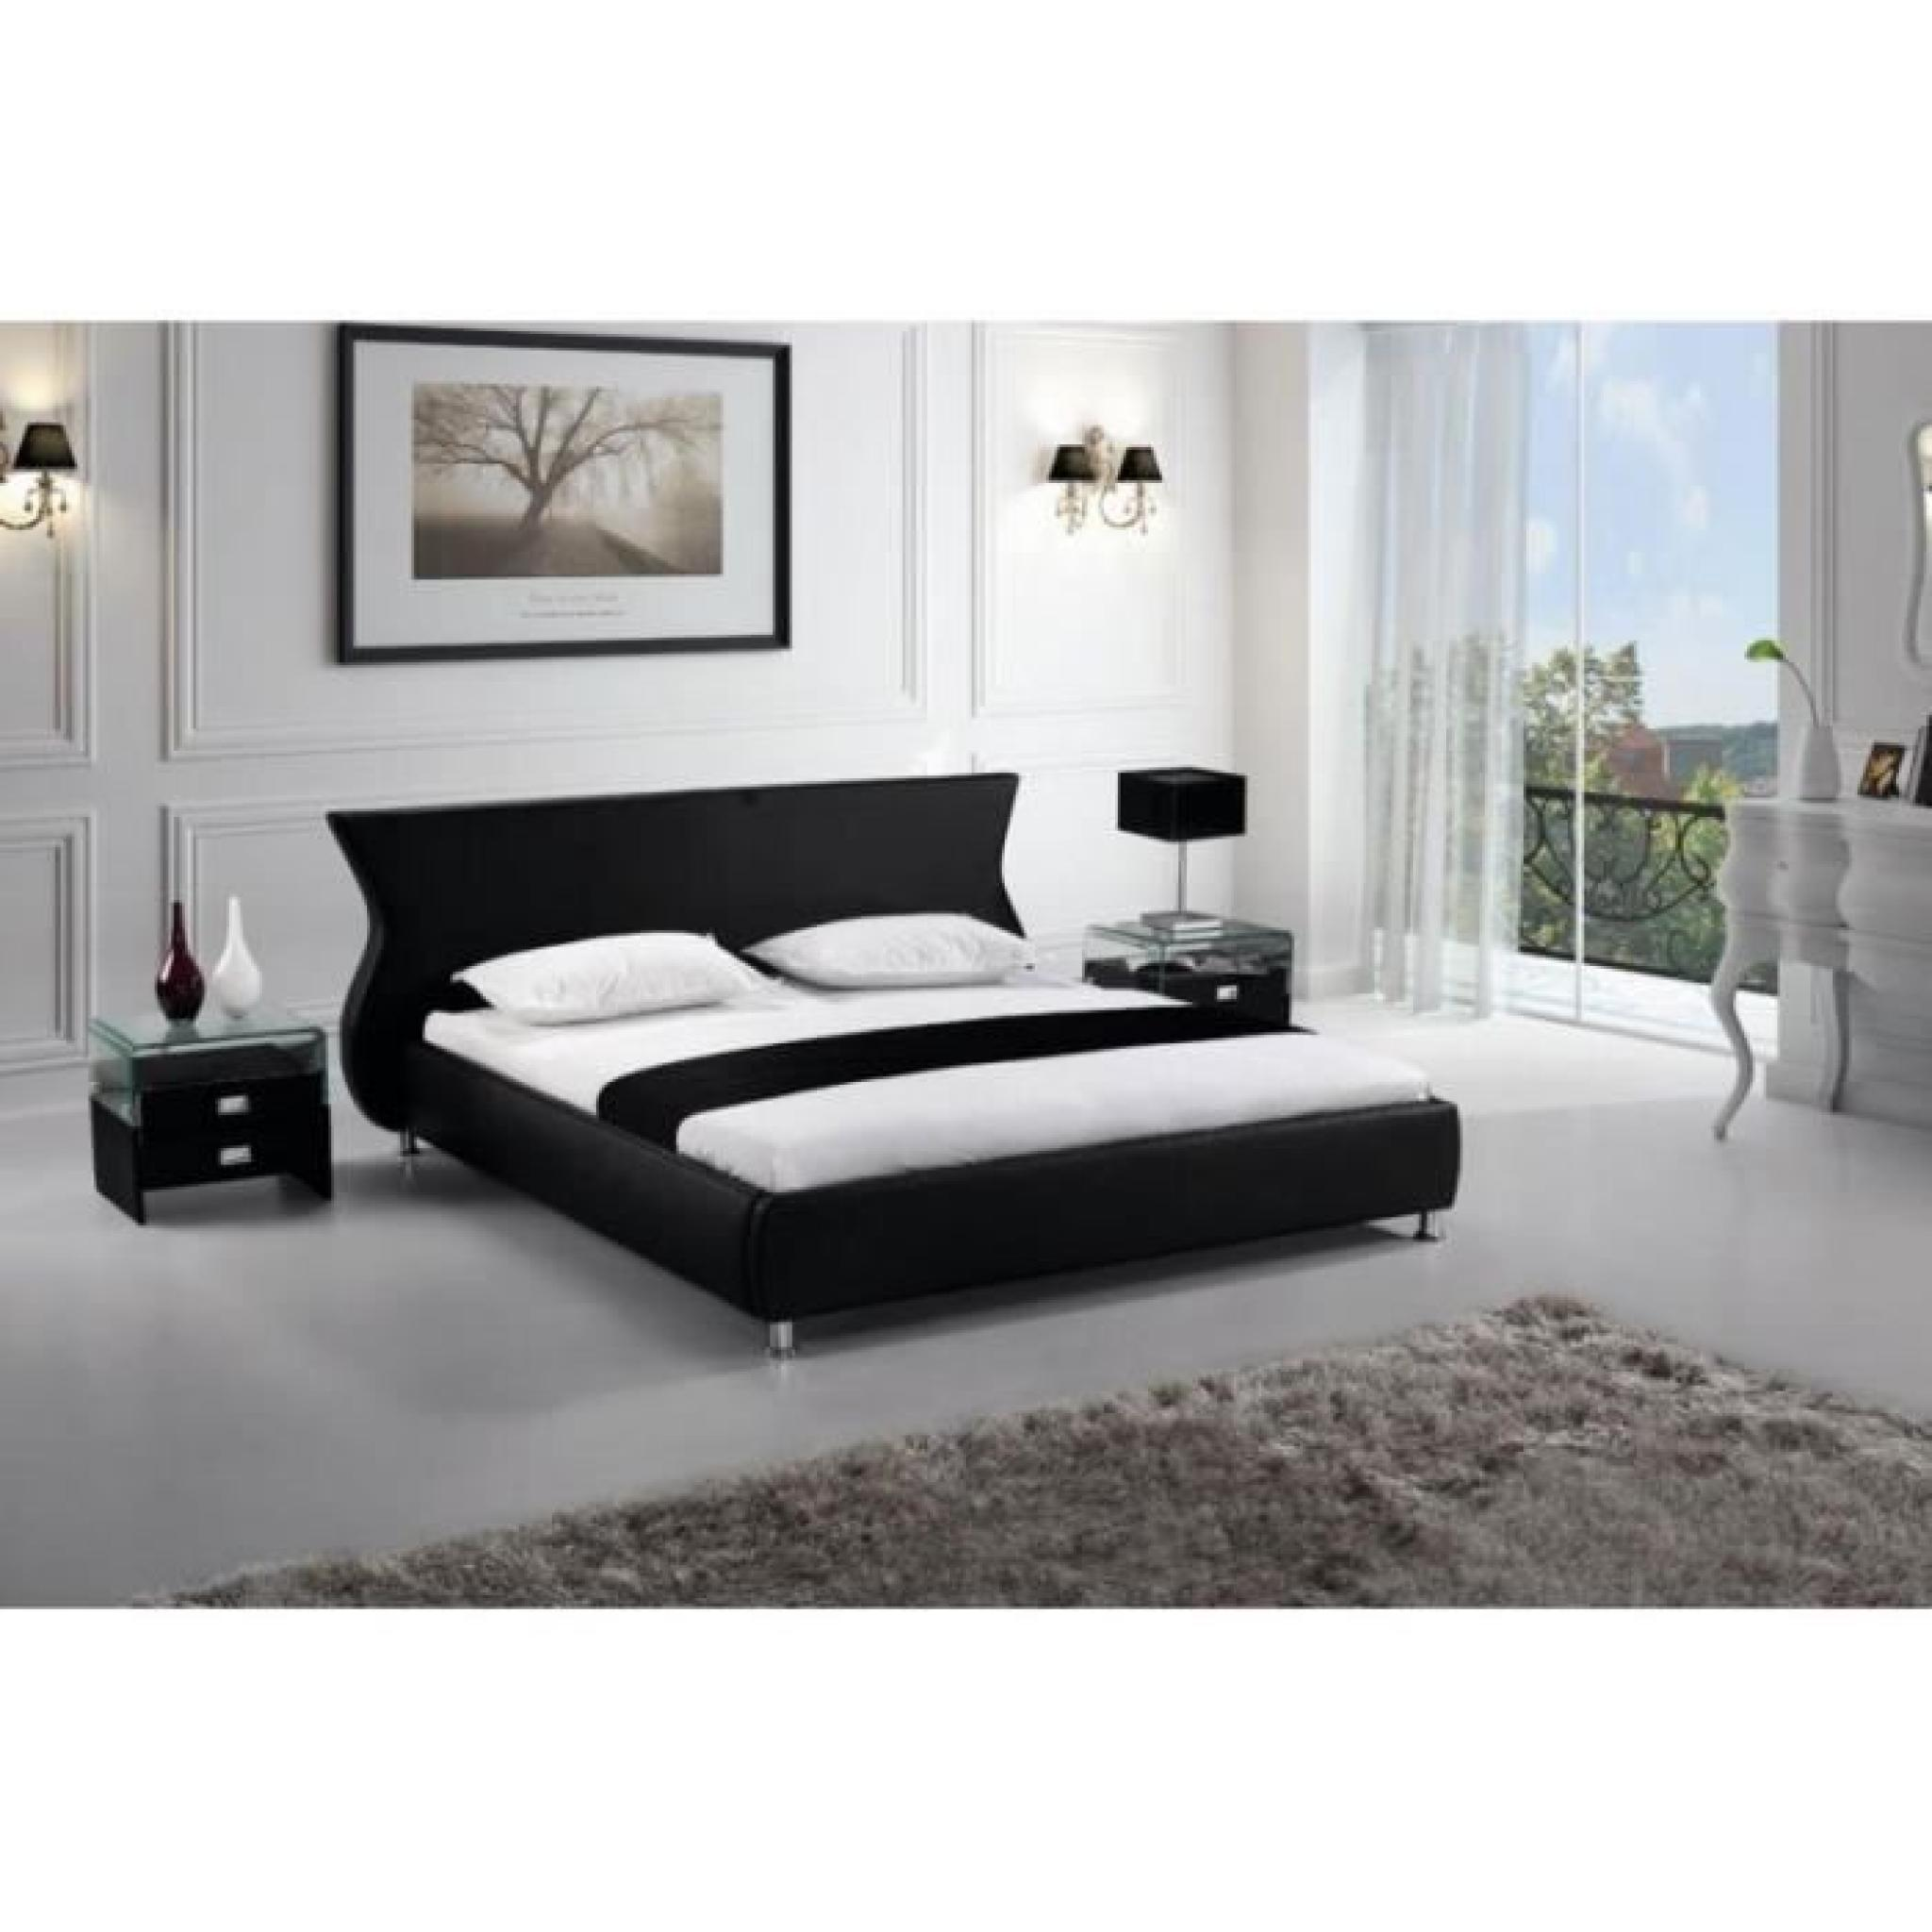 justhome giacomo noir lit rembourr en cuir cologique taille 140 x 200 cm achat vente lit. Black Bedroom Furniture Sets. Home Design Ideas